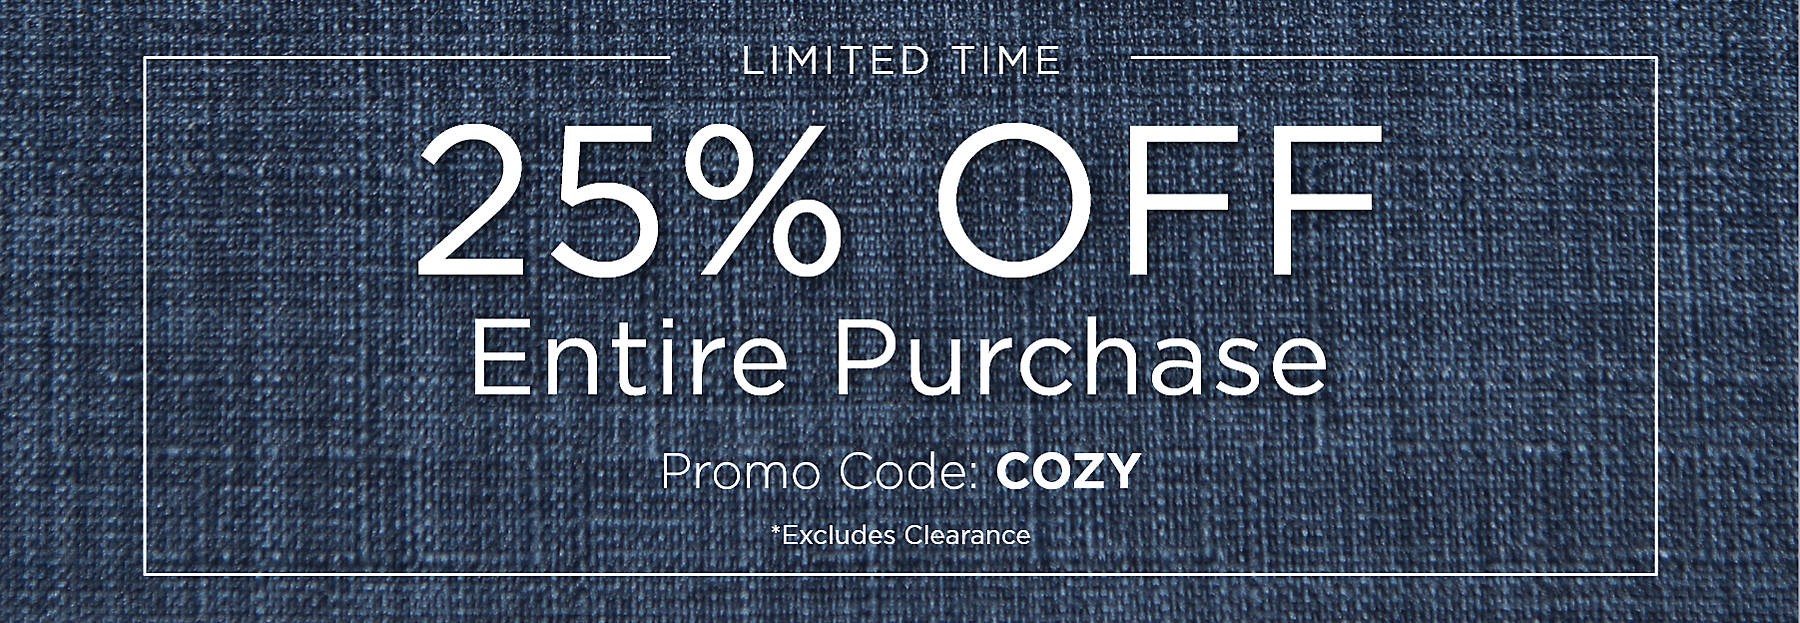 Limited Time 25% Off Entire Purchase Promo Code: COZY Excludes Clearance